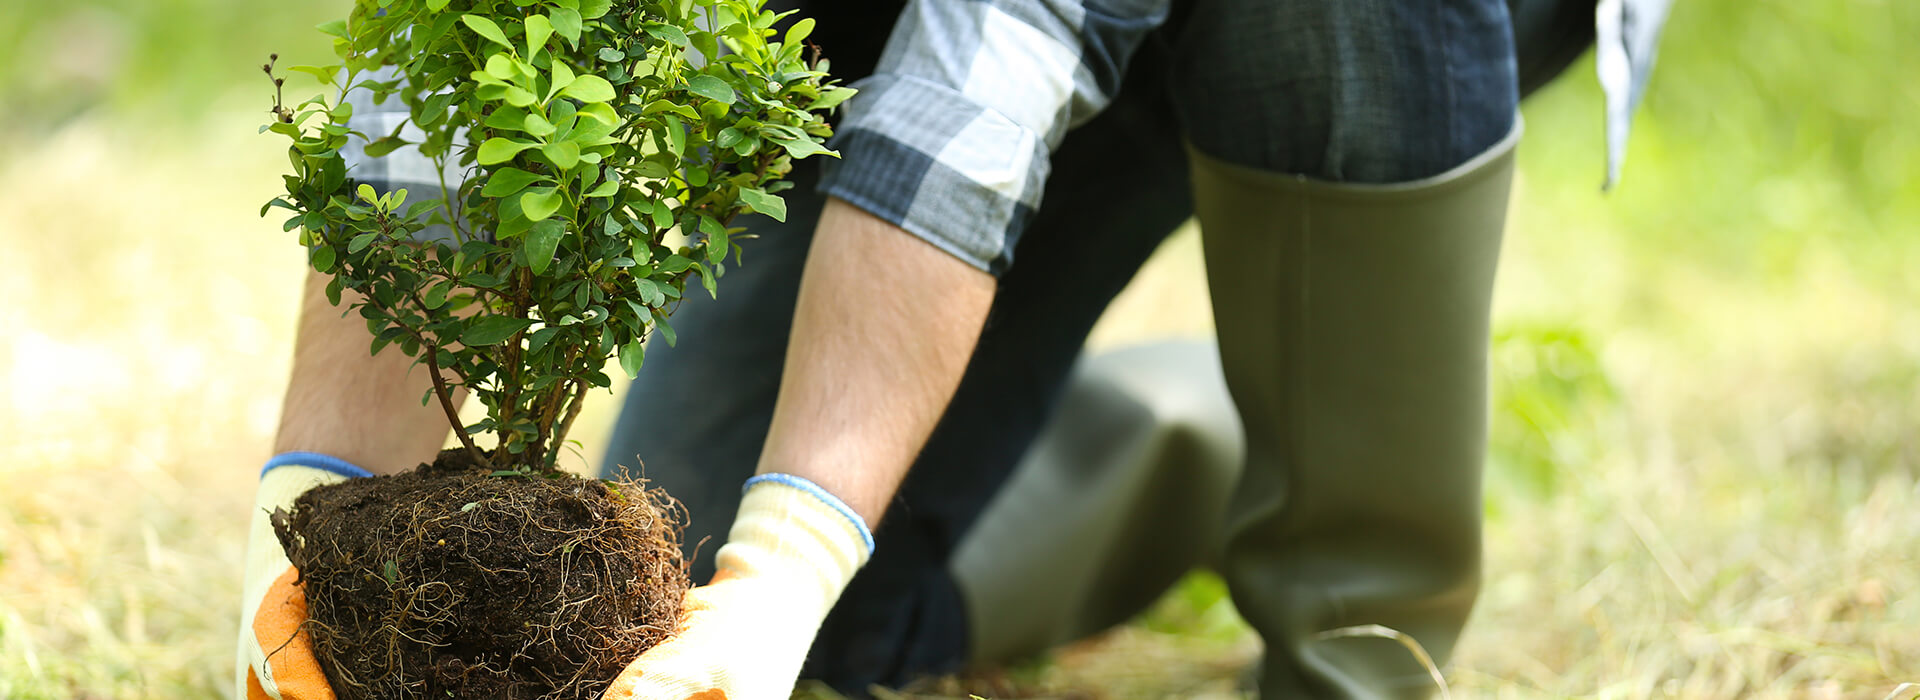 Landscaper placing plant into ground